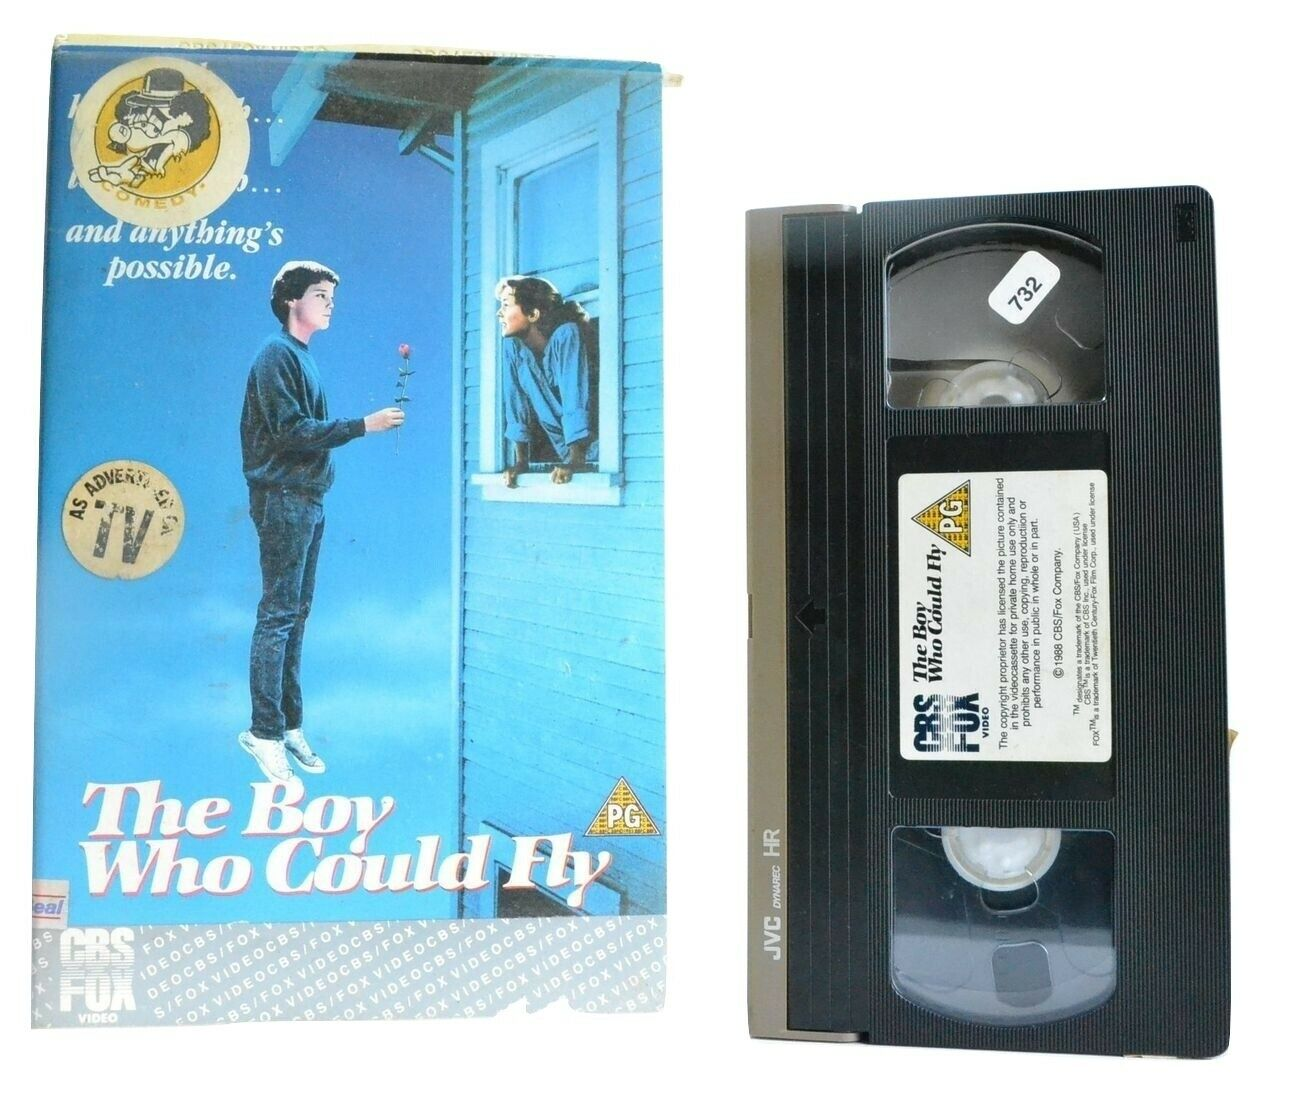 The Boy Who Could Fly: (1988) CBS/FOX - Romantic Comedy - Bonnie Bedelia - VHS